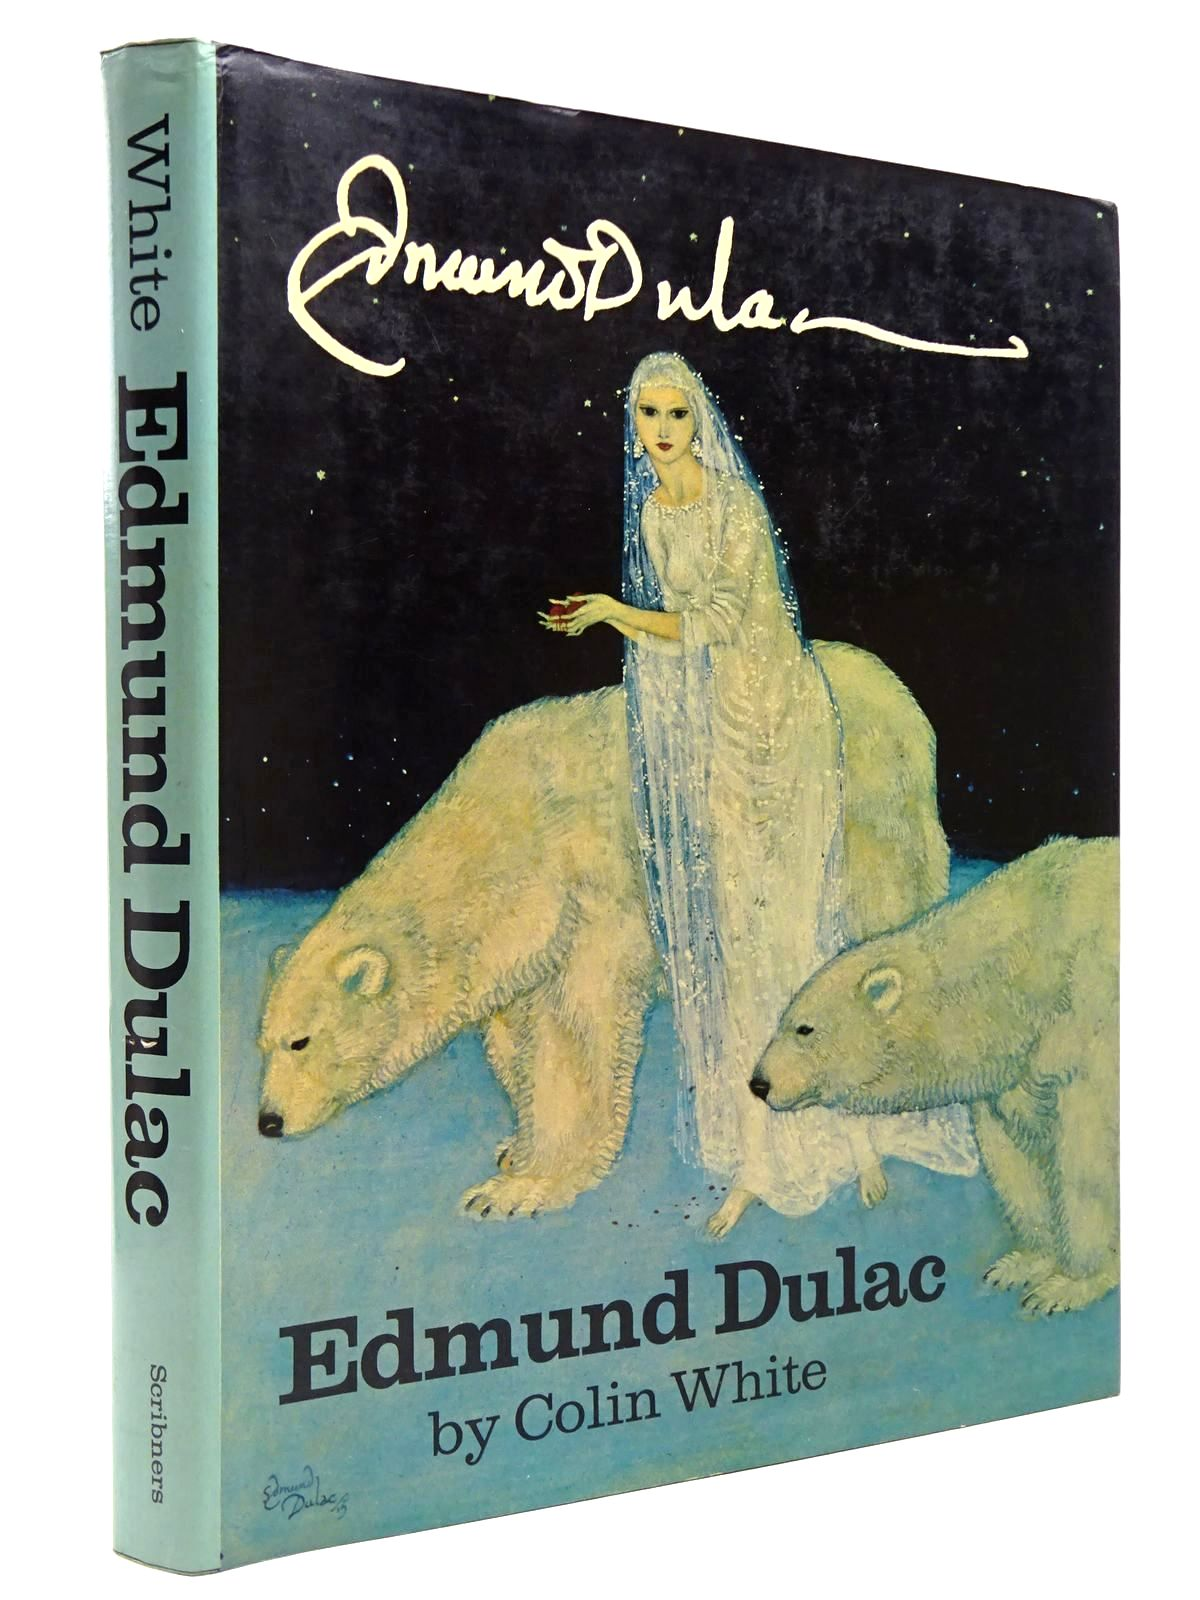 Photo of EDMUND DULAC written by White, Colin illustrated by Dulac, Edmund published by Charles Scribner's Sons (STOCK CODE: 2129627)  for sale by Stella & Rose's Books